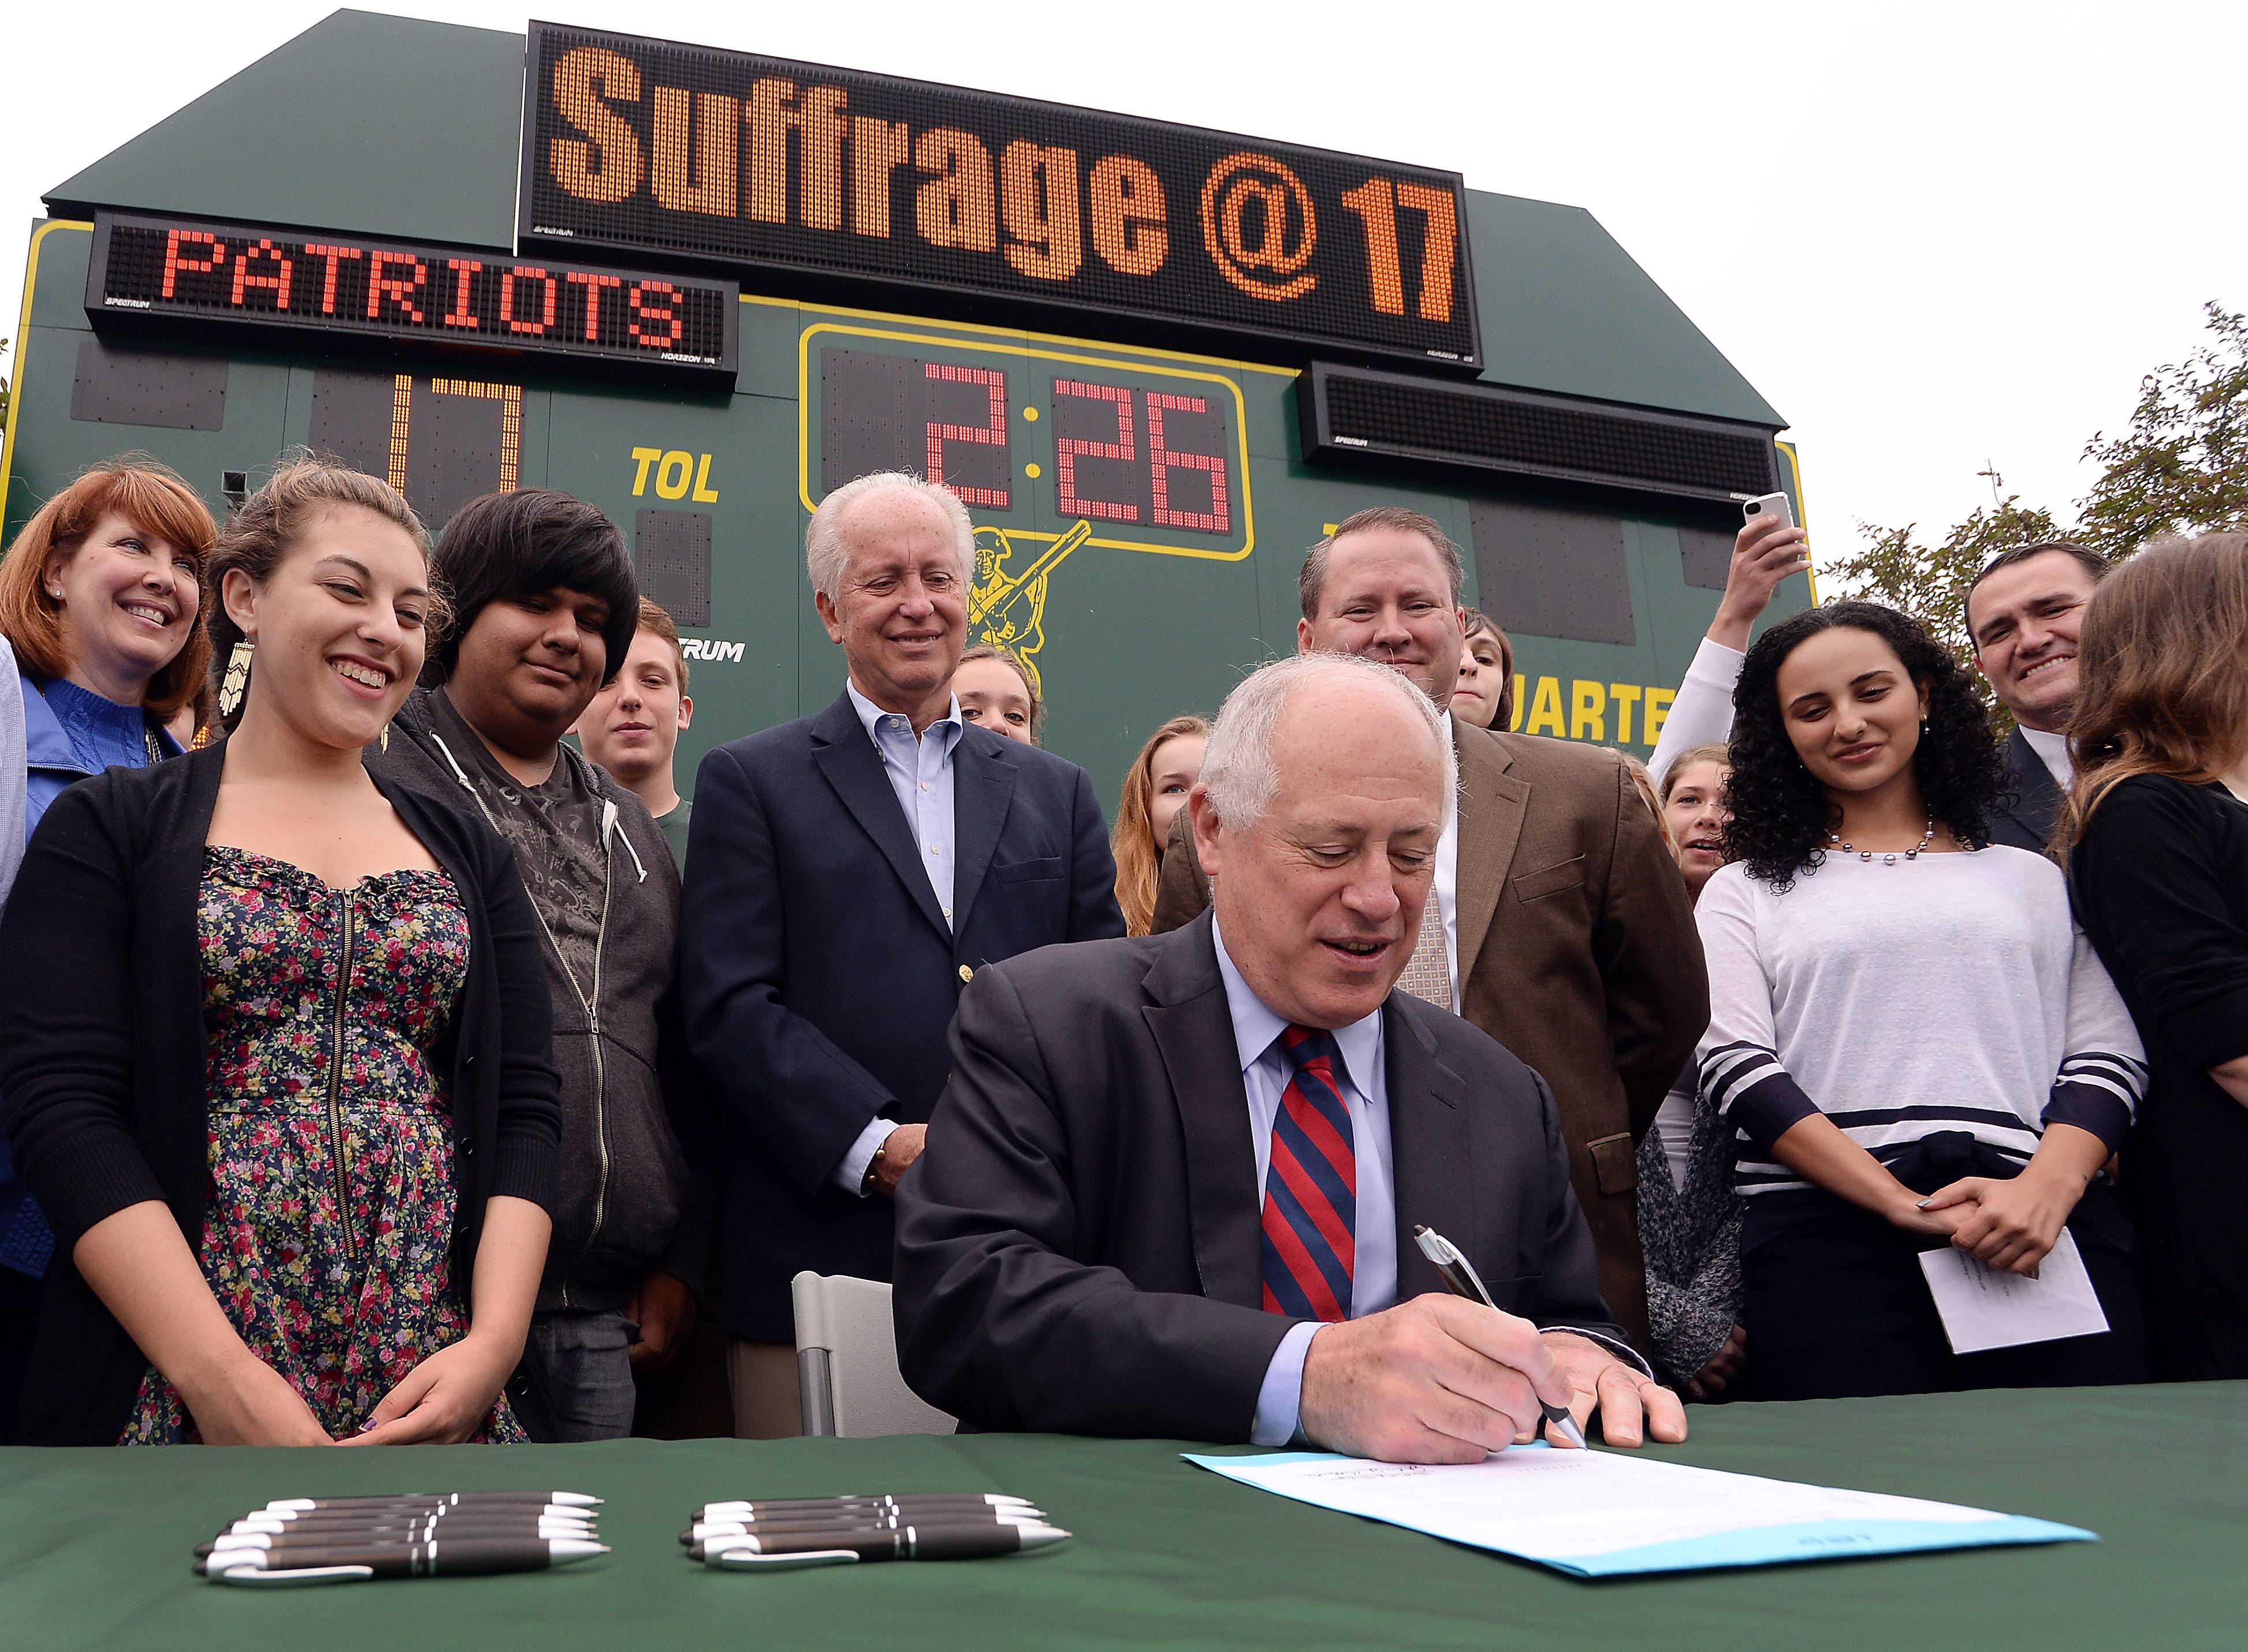 Then-Gov. Pat Quinn visited Stevenson High School in 2013 to sign legislation giving eligible 17-year-olds the right to vote. Stevenson students now are pushing a new bill that would expand election-related rights for eligible teens.